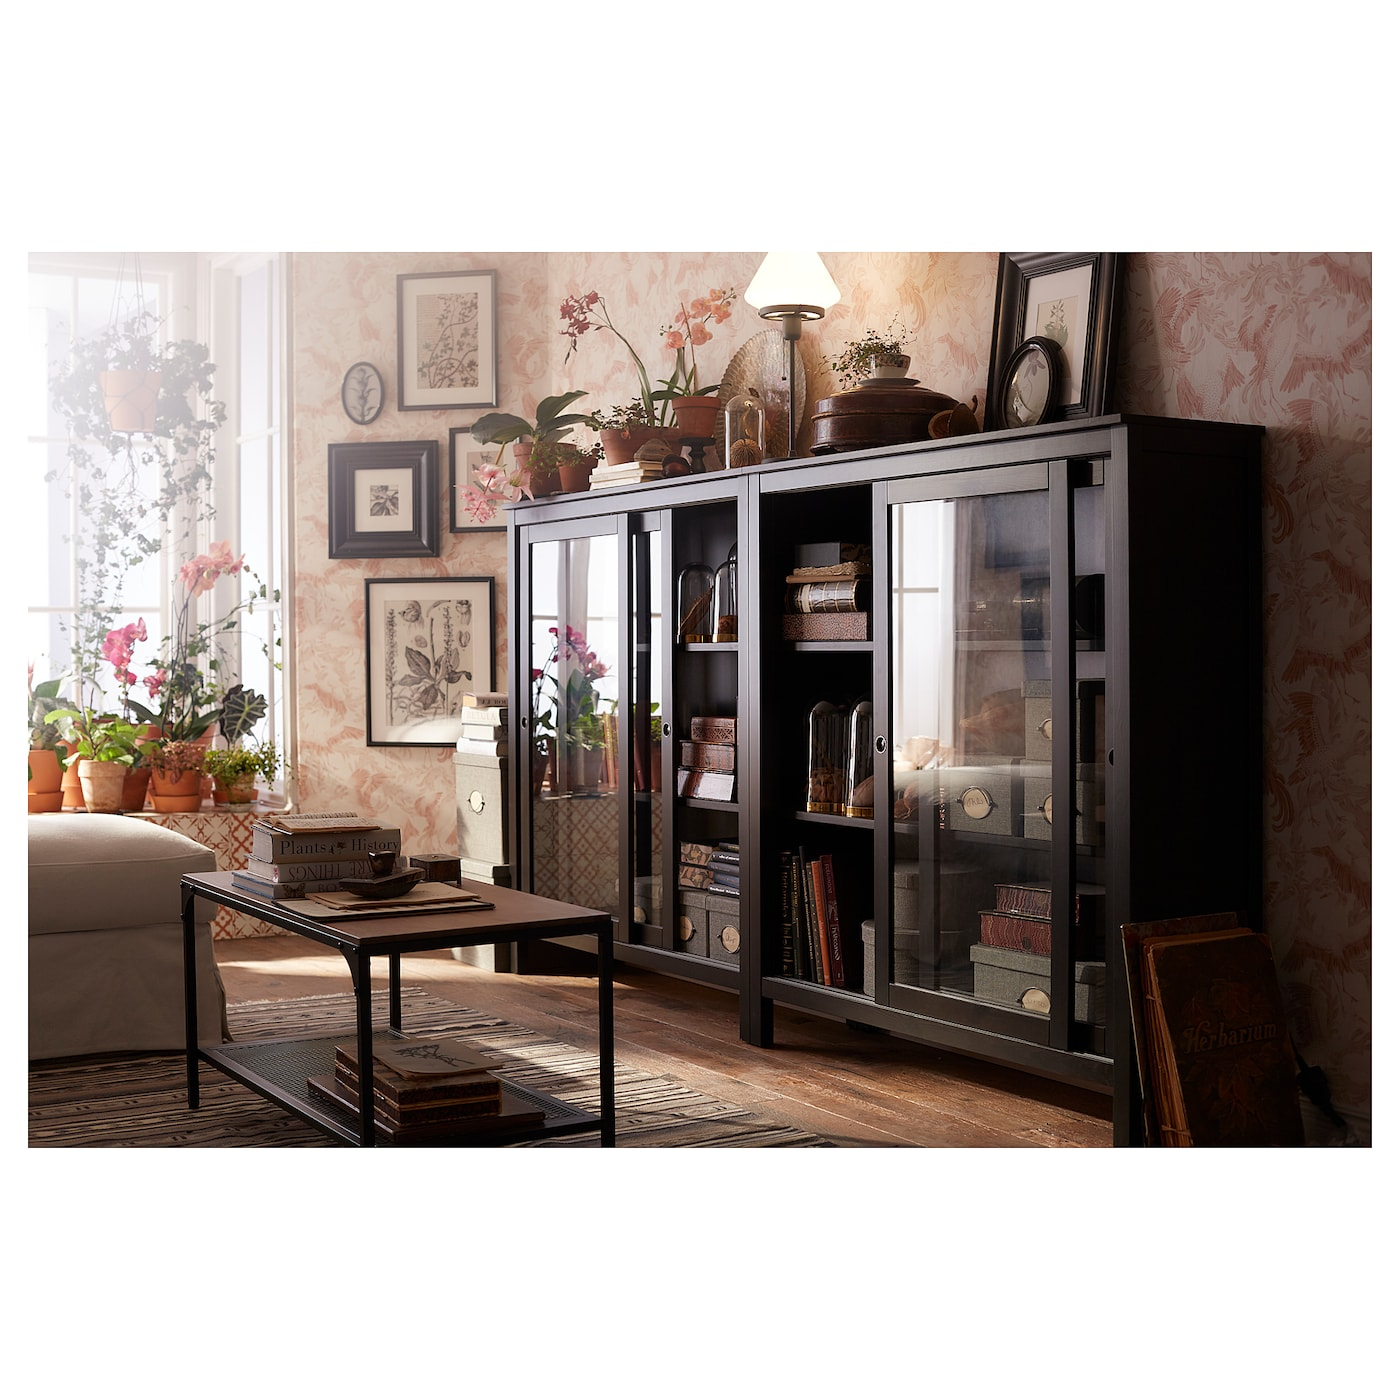 Hemnes Glass Door Cabinet Black Brown 120x130 Cm Ikea